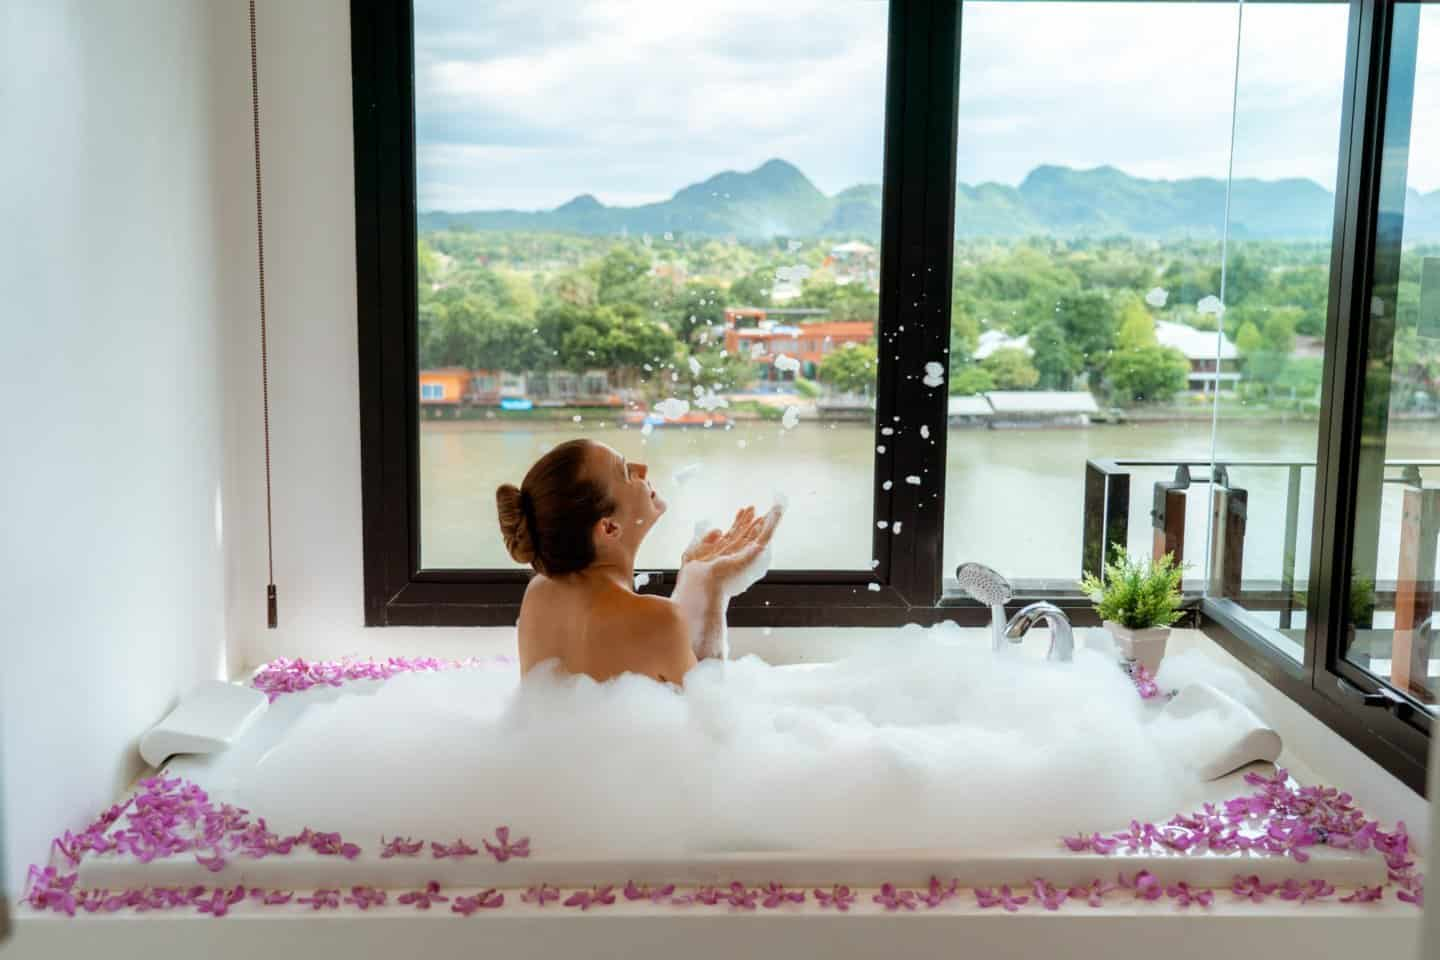 Enjoying the jacuzzi bath tub at Natee The Riverfront Hotel Kanchanaburi